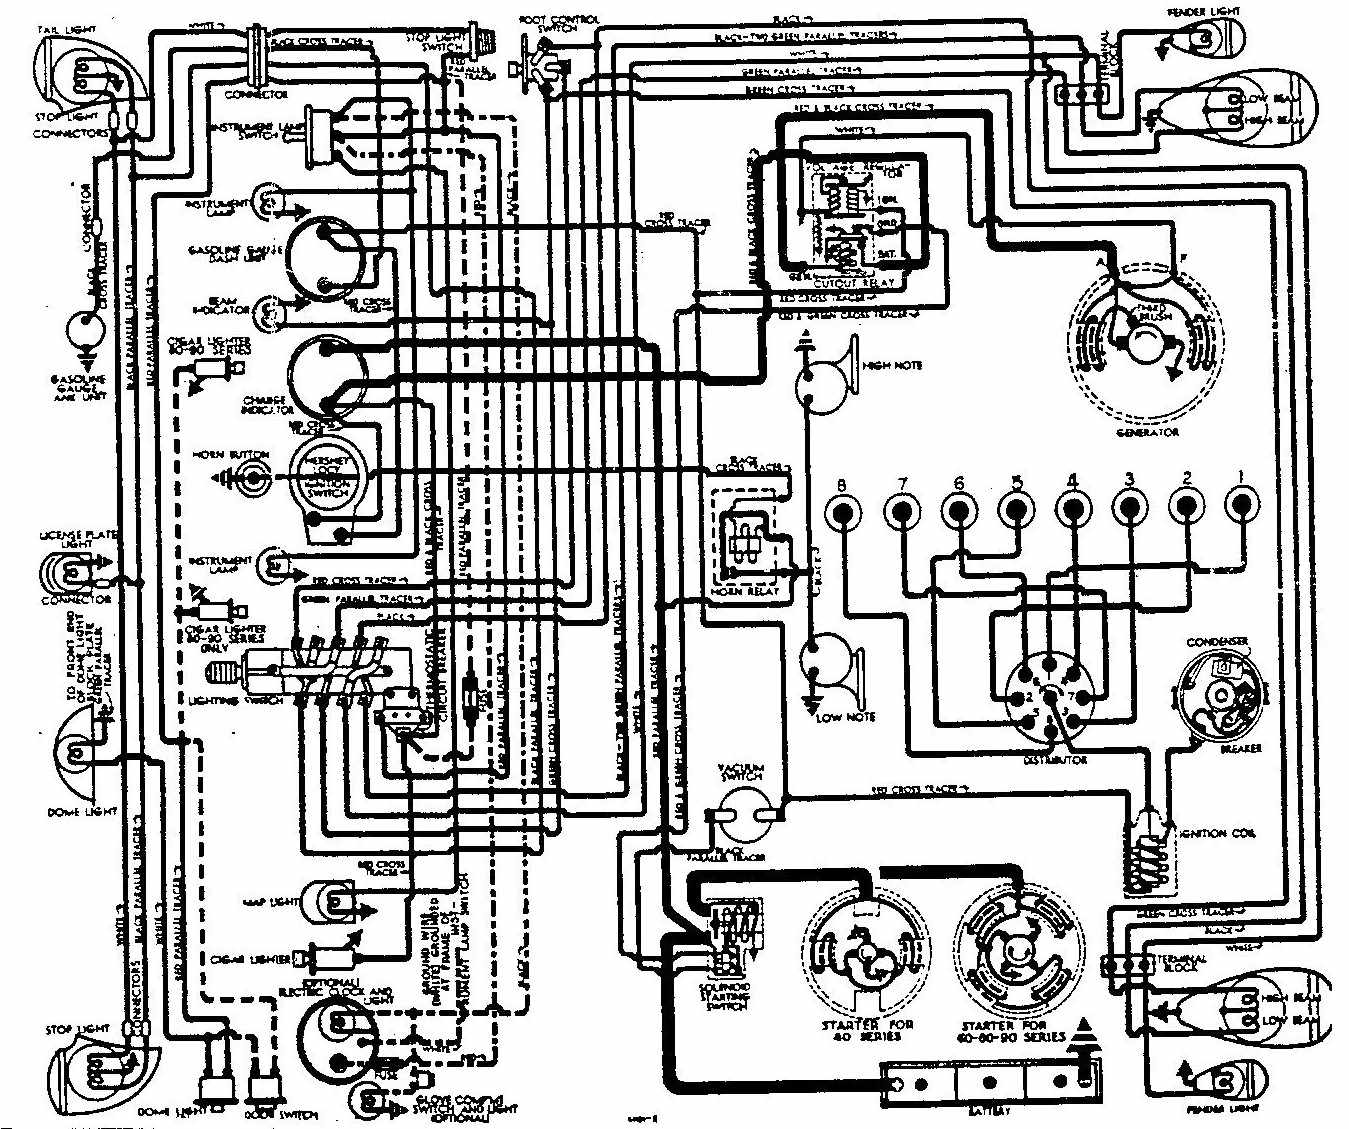 small resolution of 1938 buick wiring diagram wiring diagram1938 buick wiring diagram